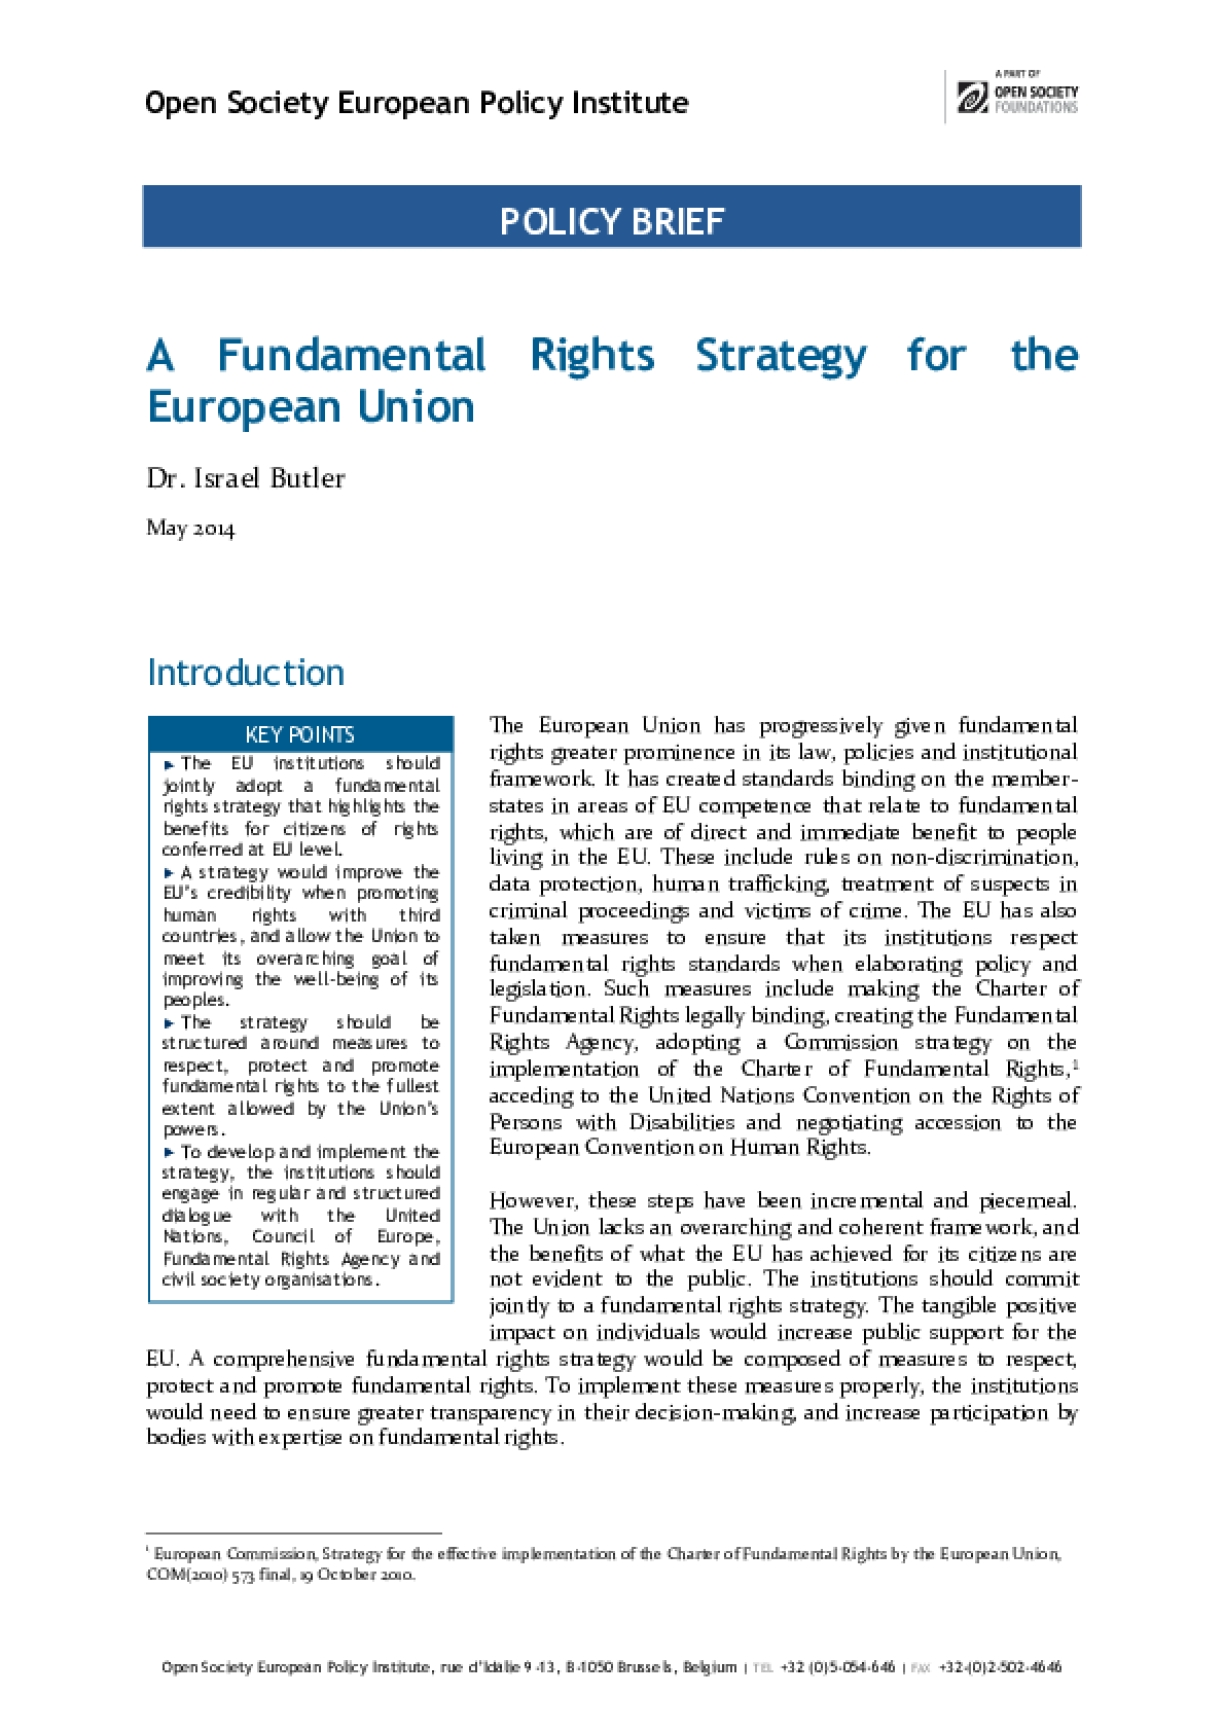 A Fundamental Rights Strategy for the European Union